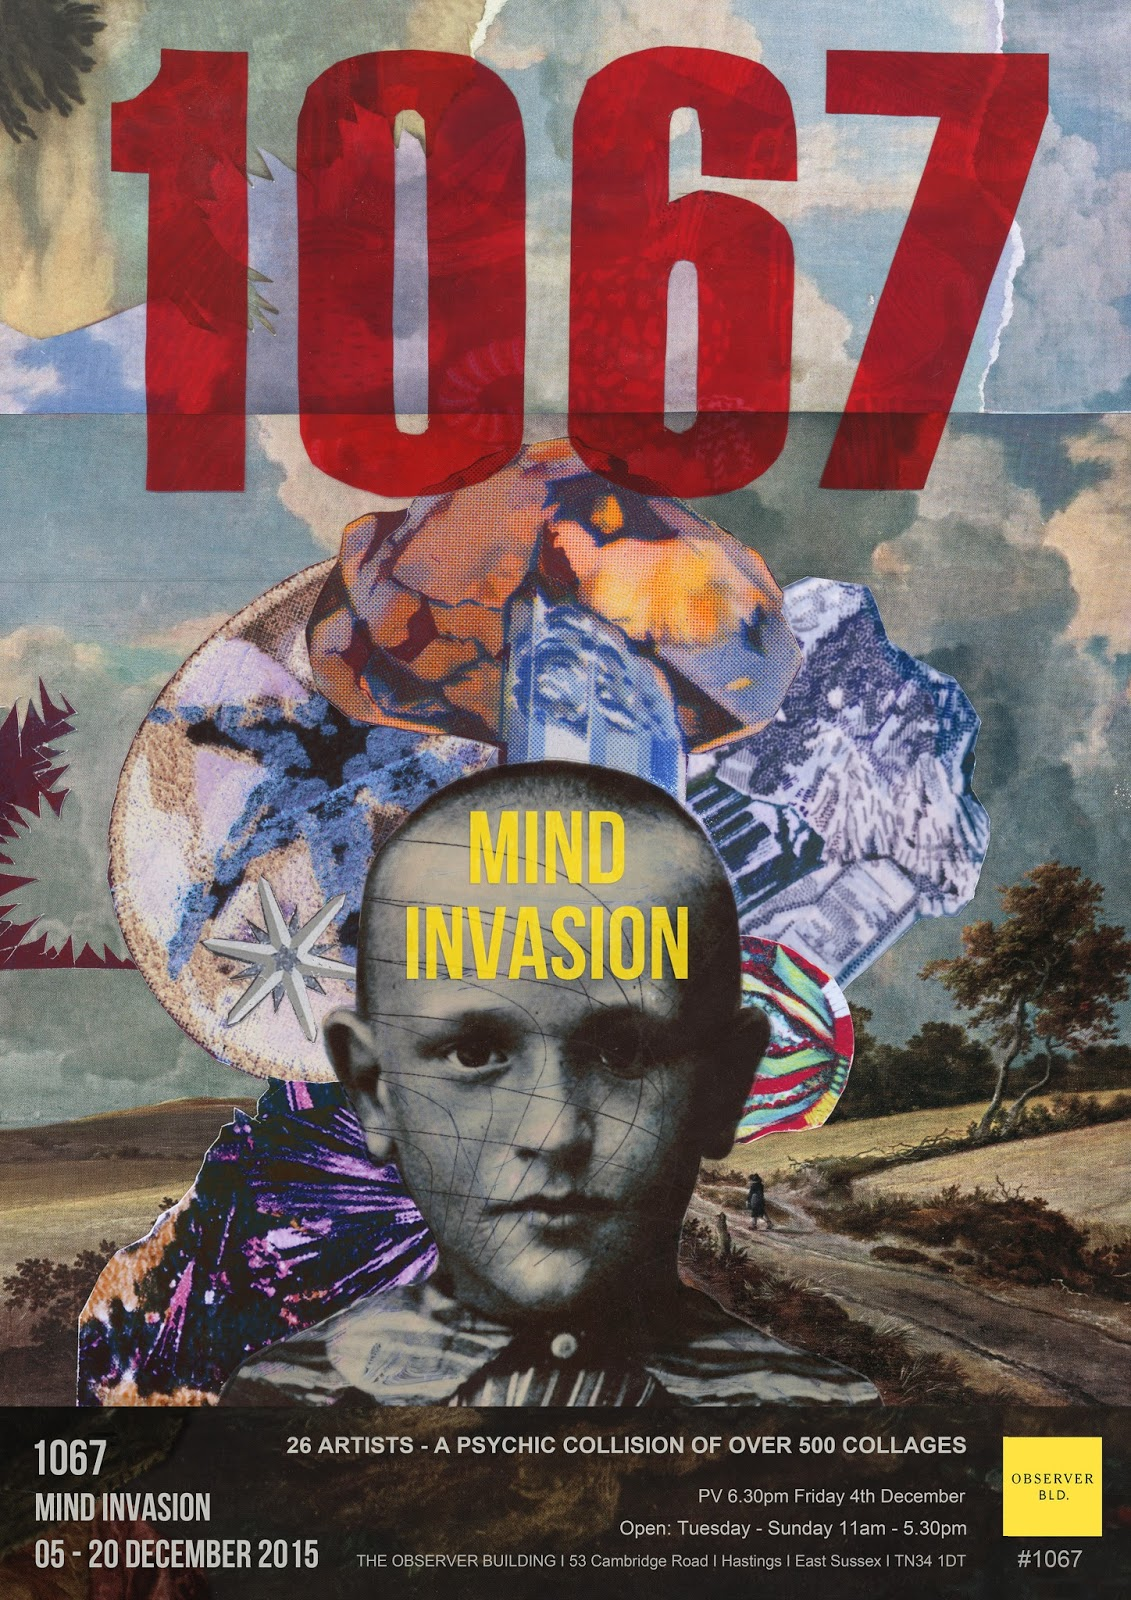 1067 : A MIND INVASION – HASTINGS, UK 4 DECEMBER 2015. ""